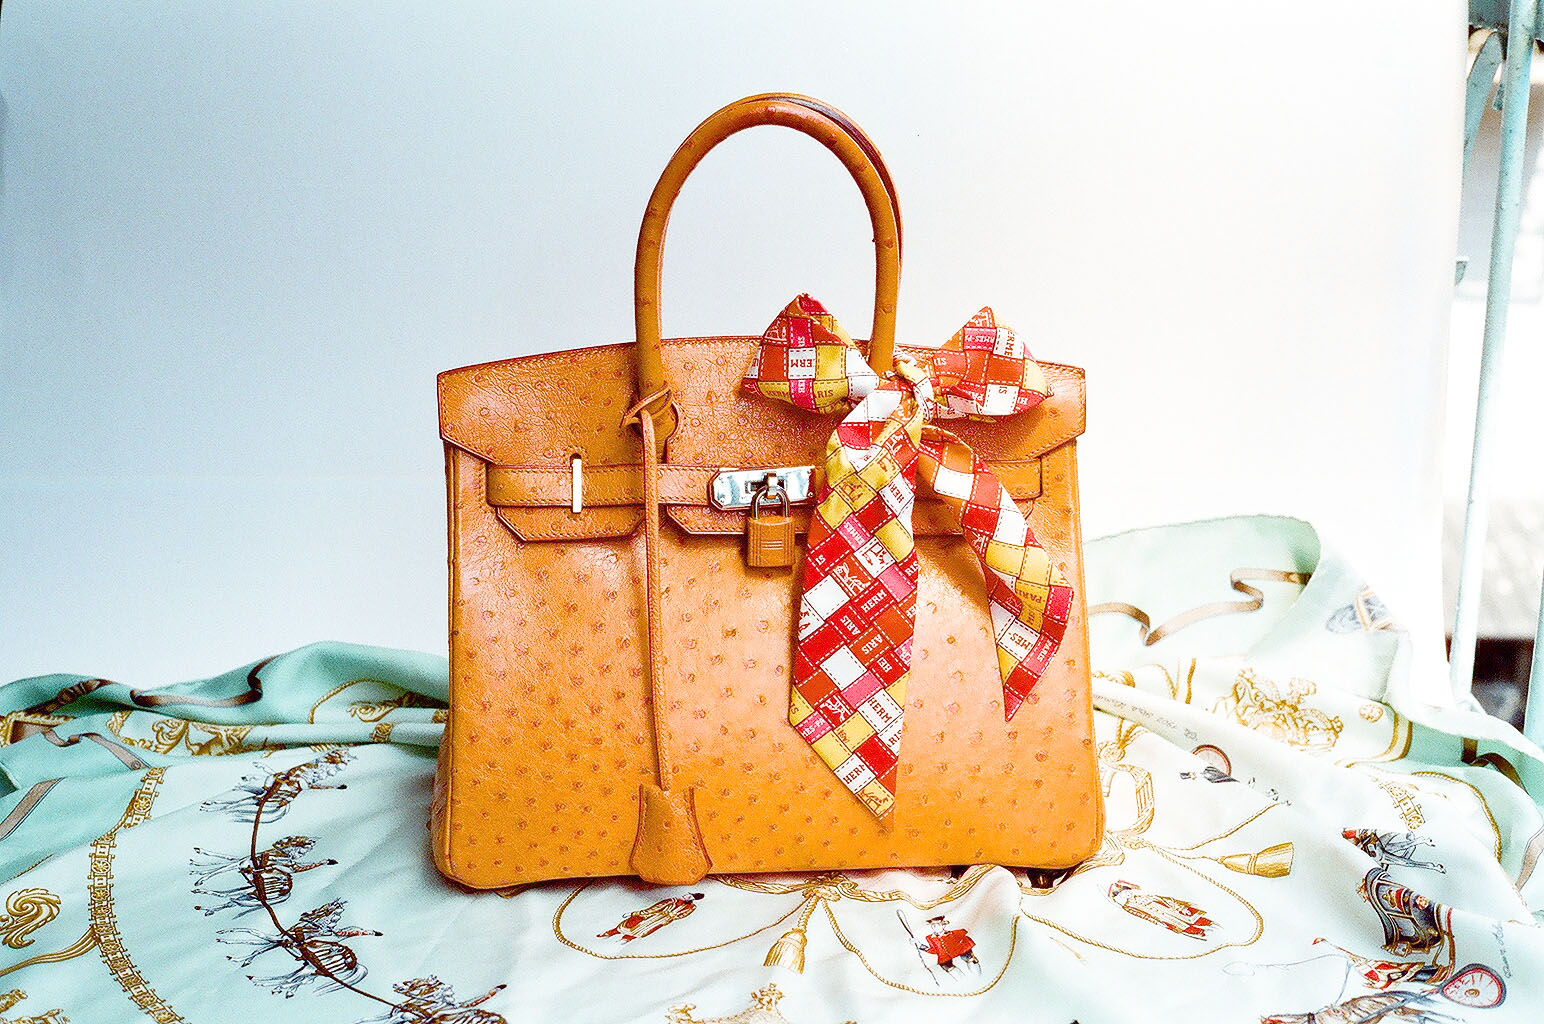 where can i sell my hermes bag - Birkin bag - Wikipedia, the free encyclopedia